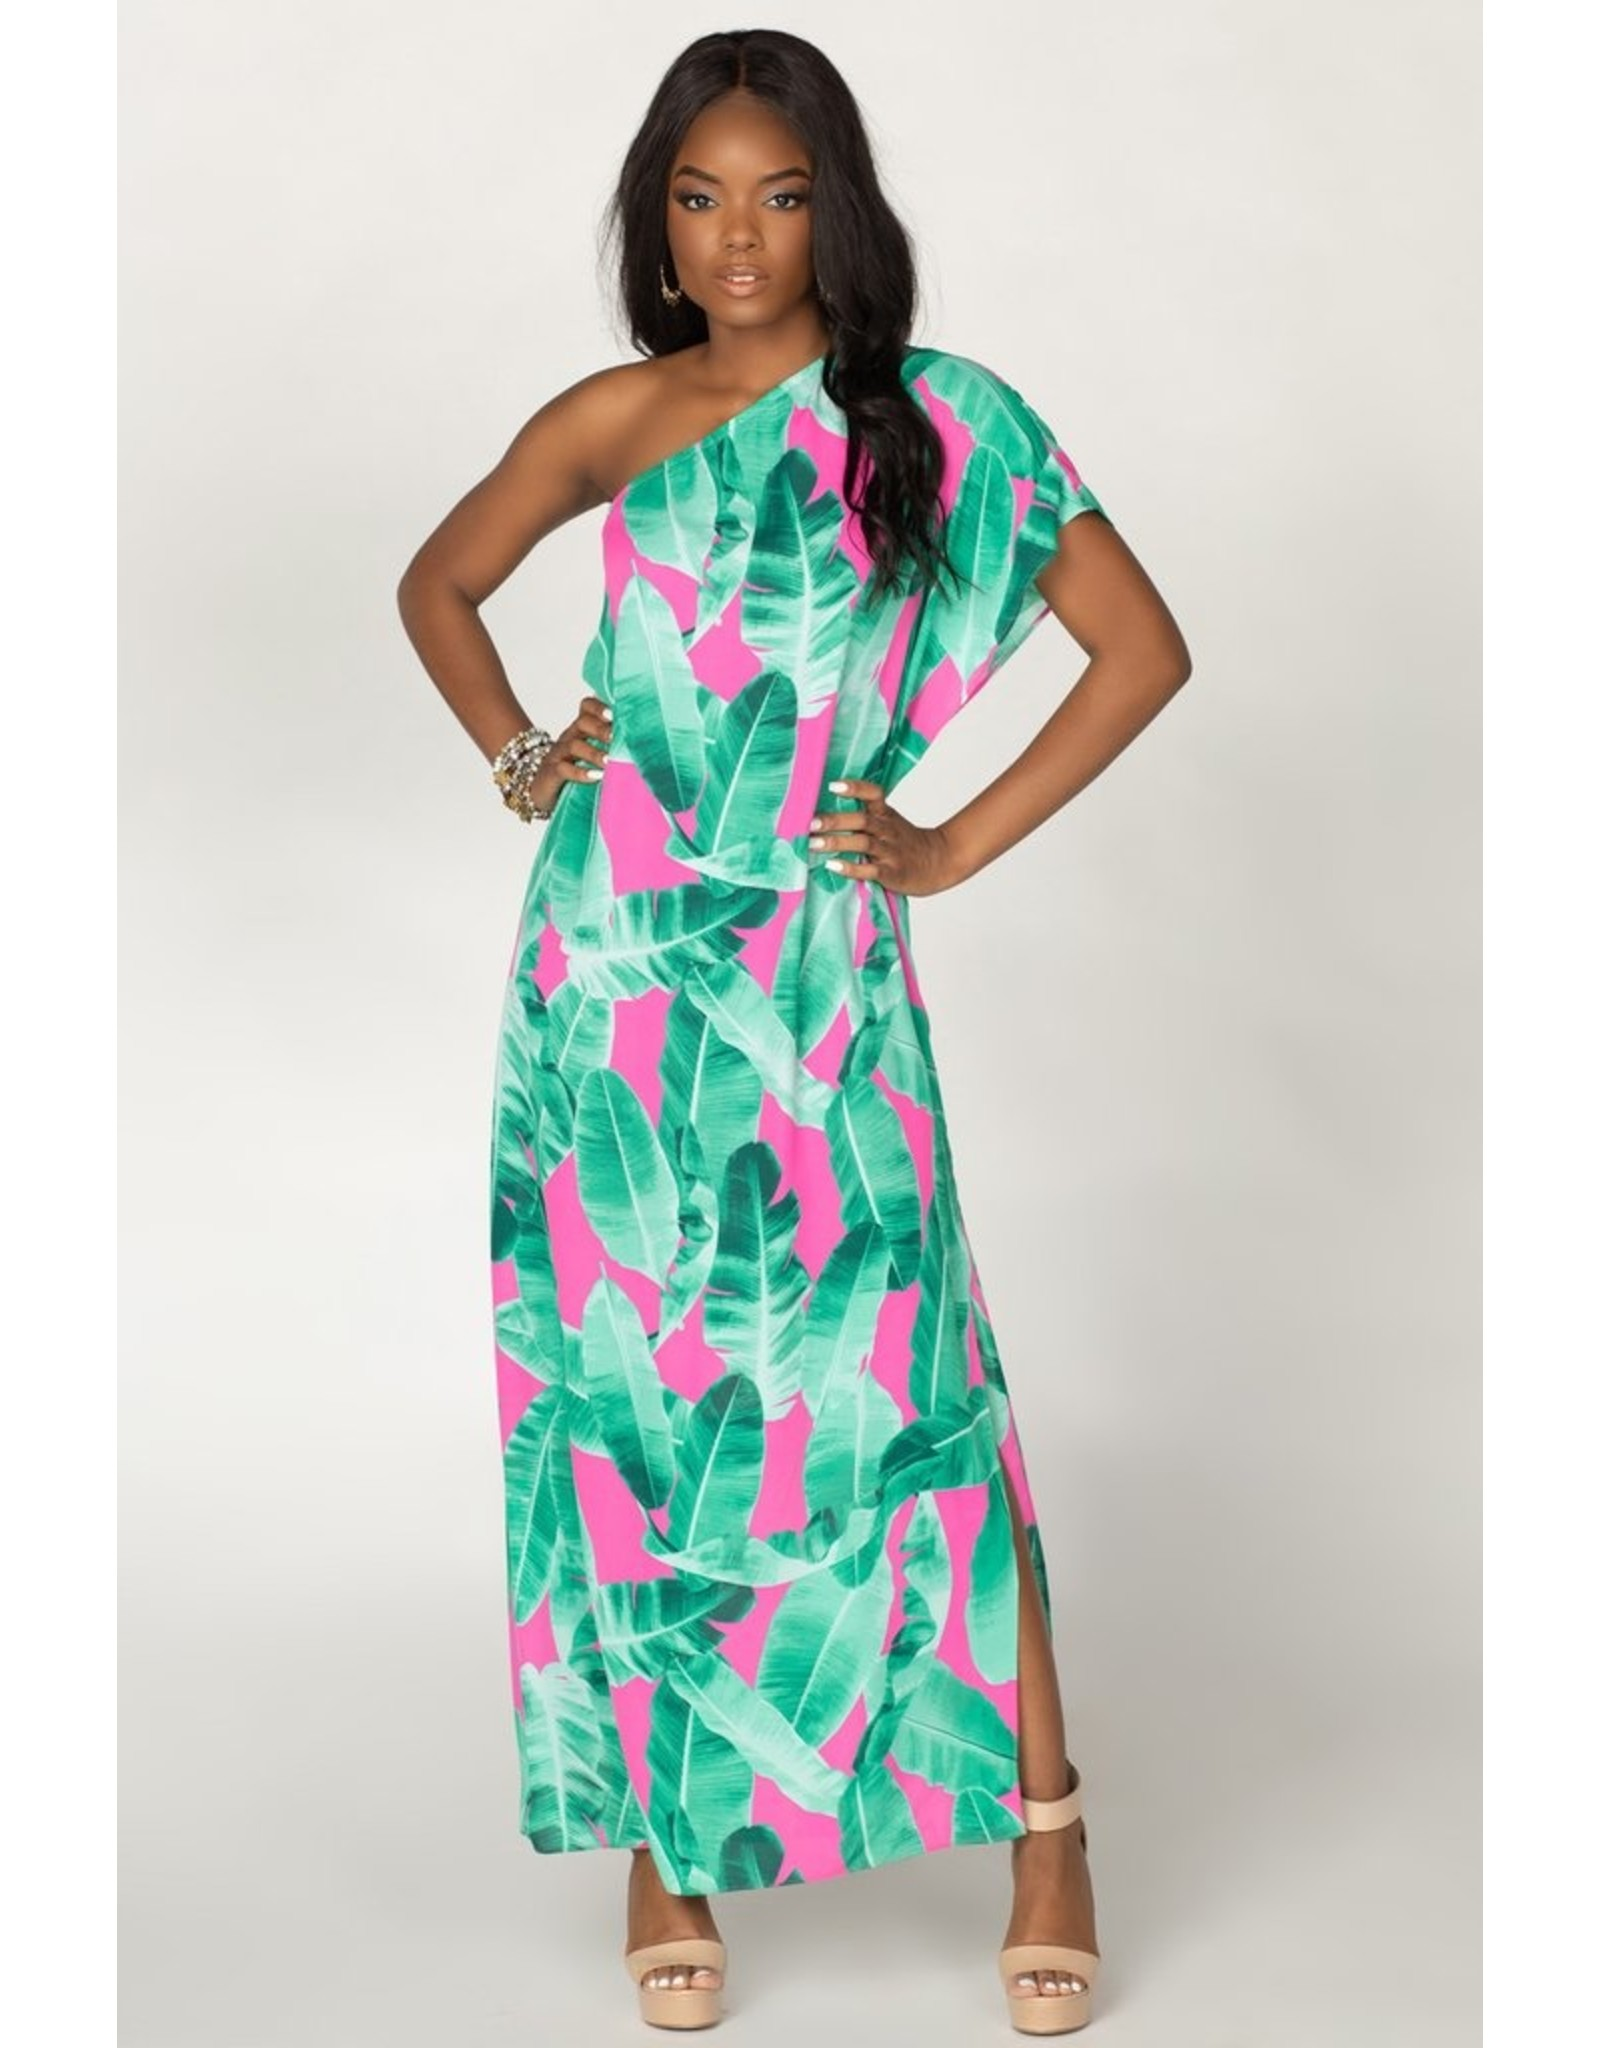 Buddy Love Tropical One Shoulder Maxi Dress - Pink